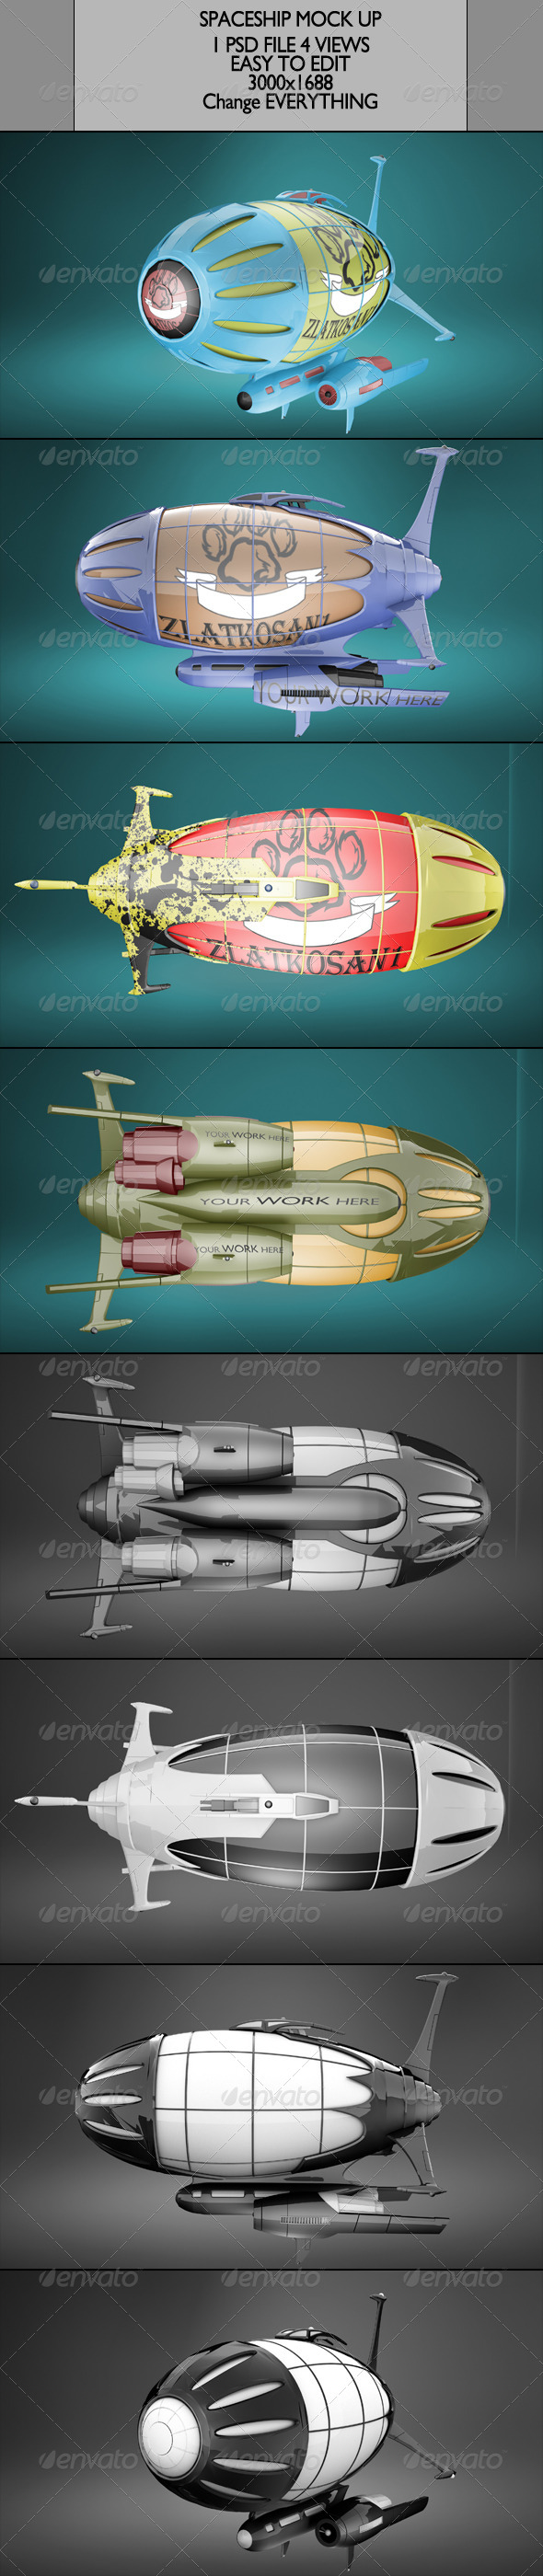 Spaceship Mock Up - Product Mock-Ups Graphics